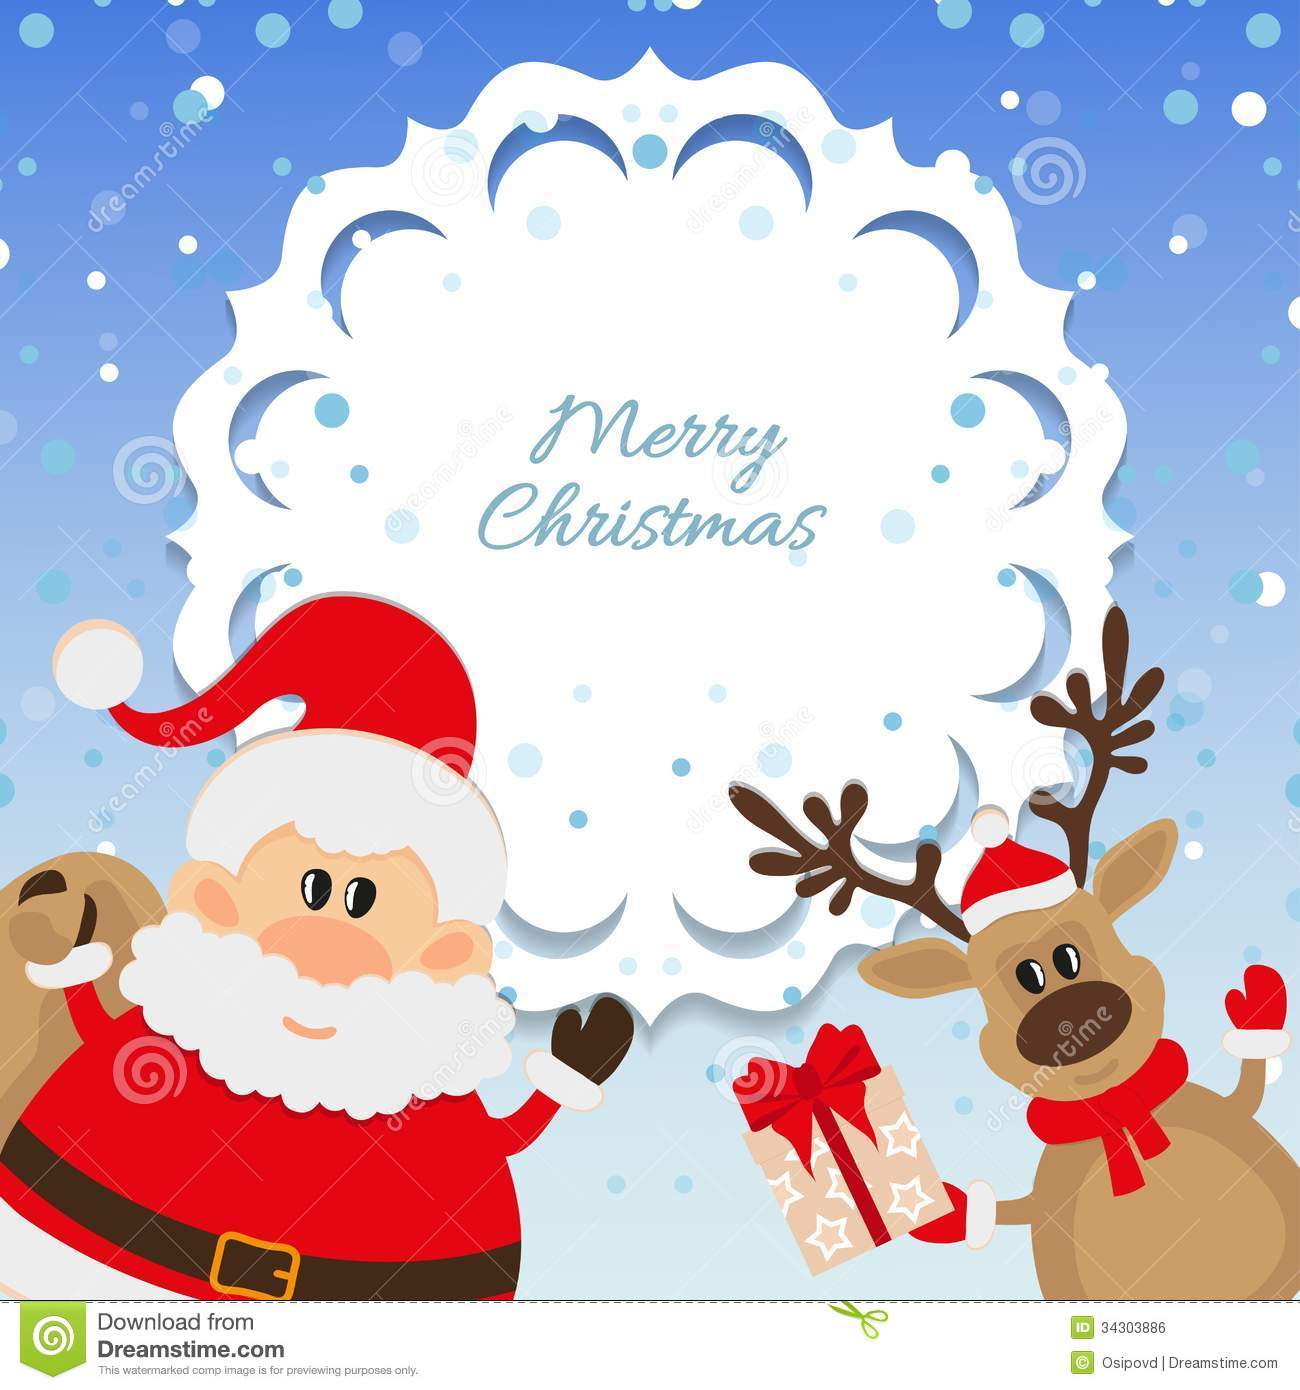 Santa Claus And Reindeer Background For Christmas Royalty